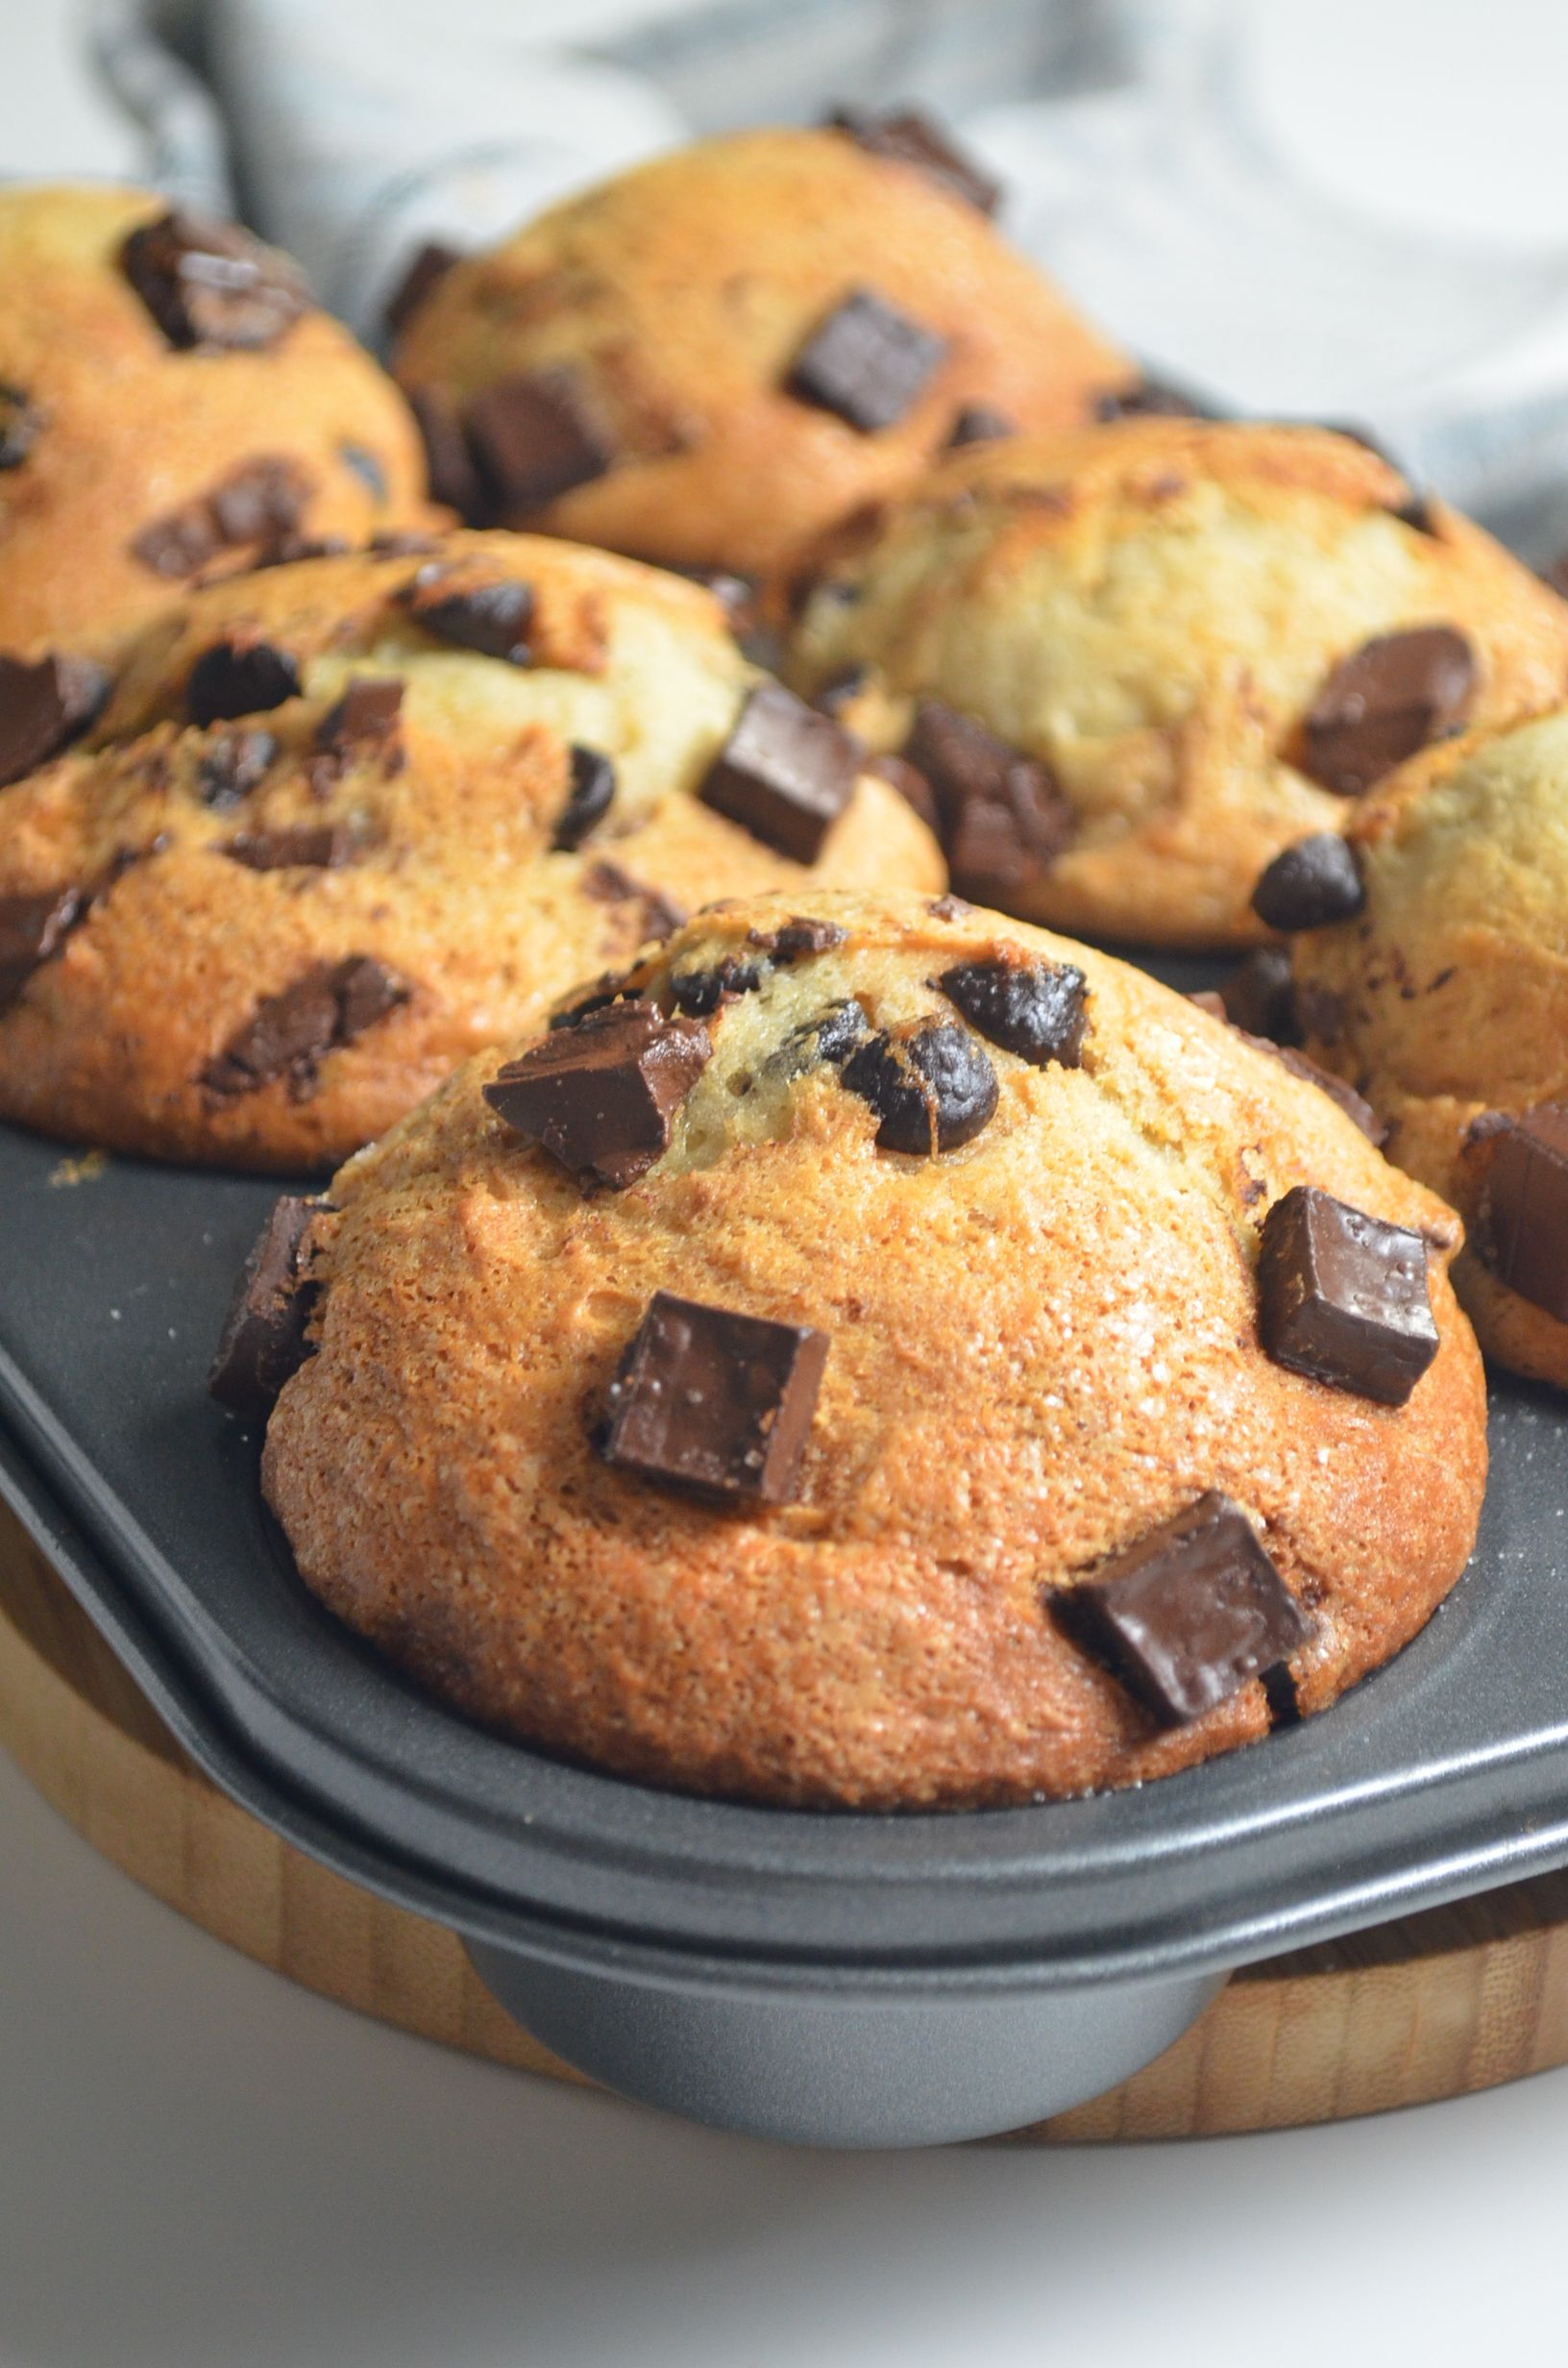 [VIDEO ]Bakery Style Jumbo Banana Chocolate Chip Muffin